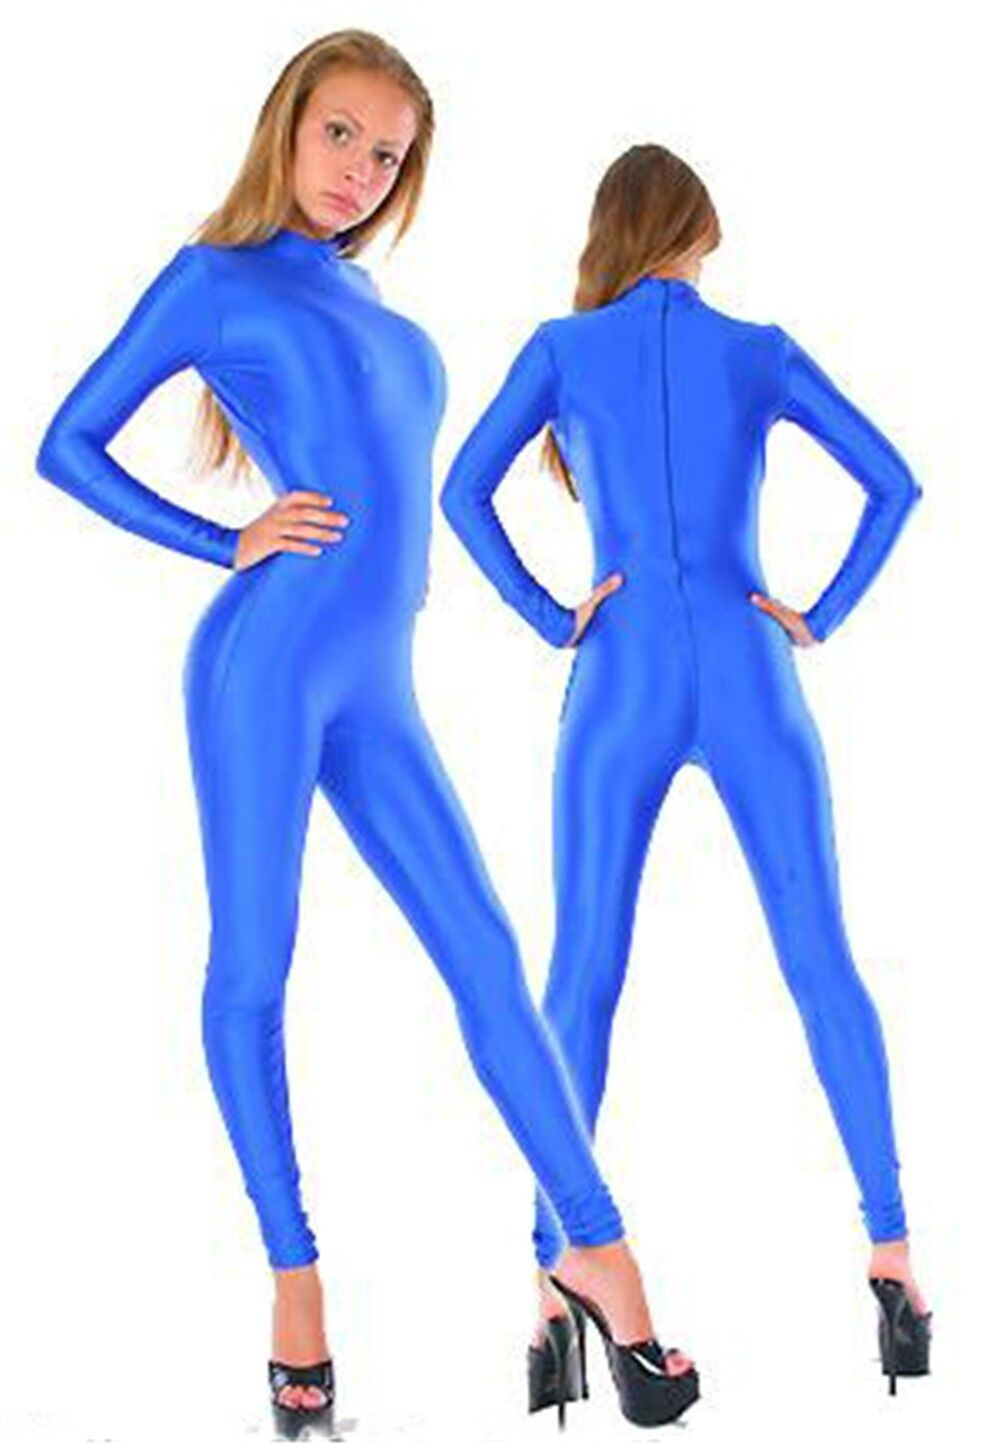 And shame! full body spandex suit